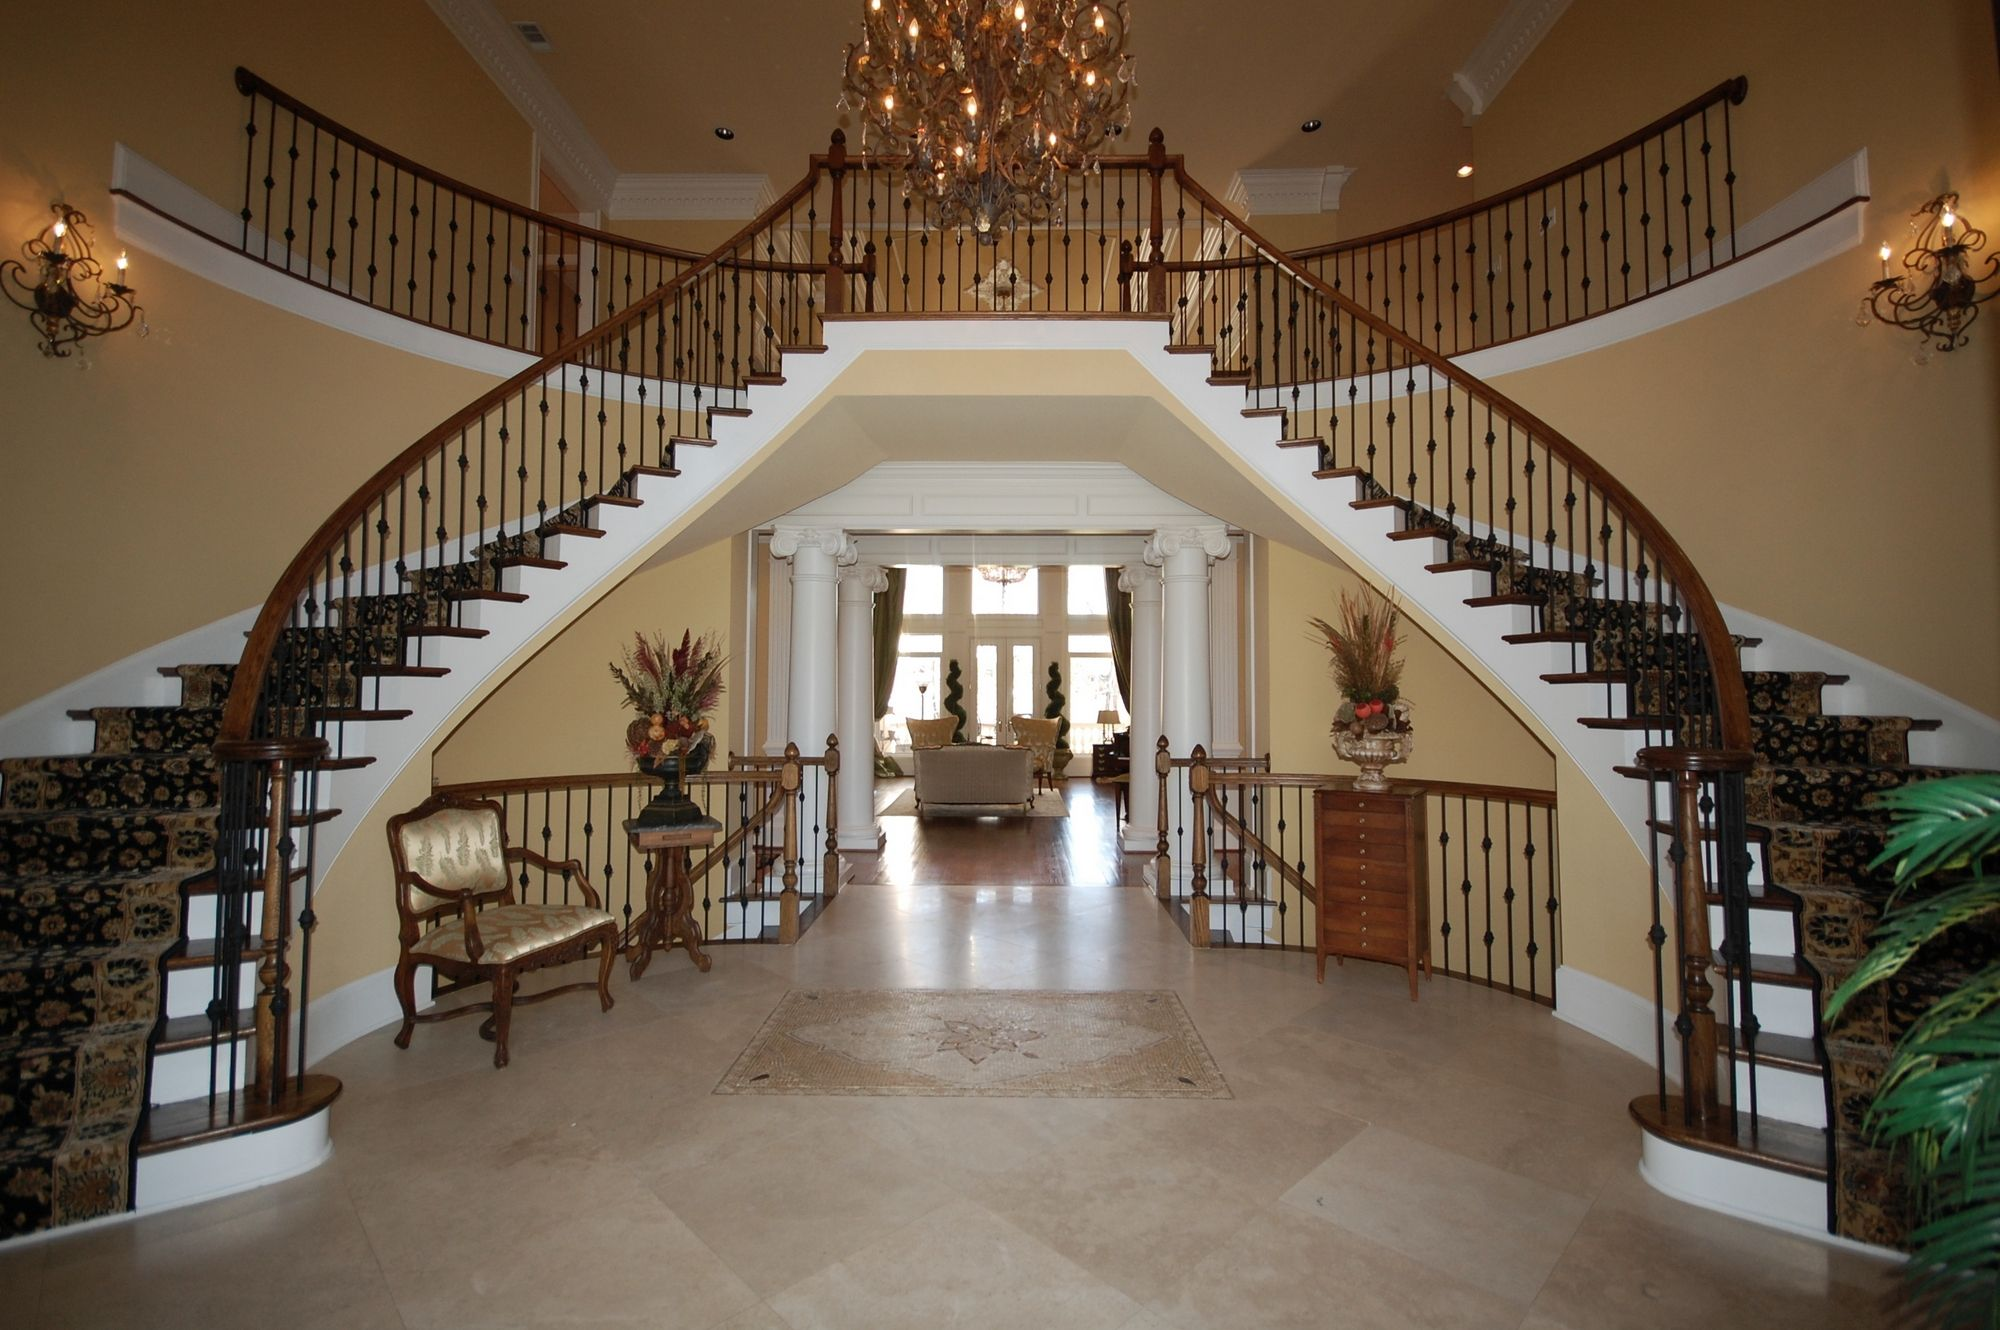 House Foyer Staircase : Love the dual staircase in entrance foyer of this